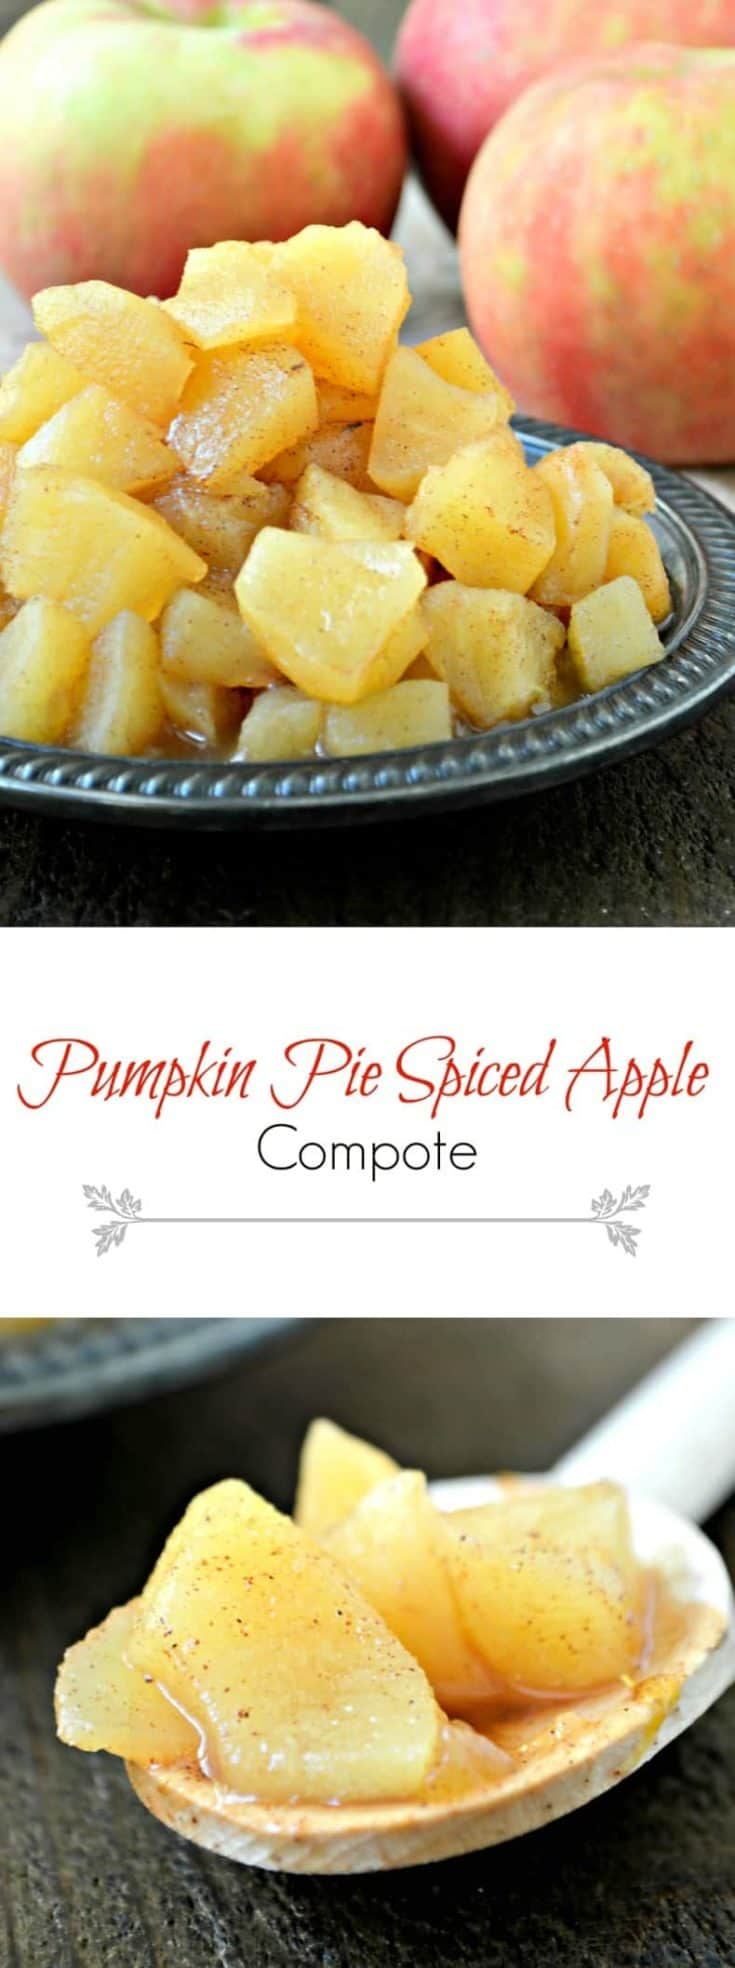 Pumpkin Pie Spiced Apple Compote is best served warm over ice cream, oatmeal, and/or yogurt. It's an easy mixture that you can reach for so often. #compote #applecompote